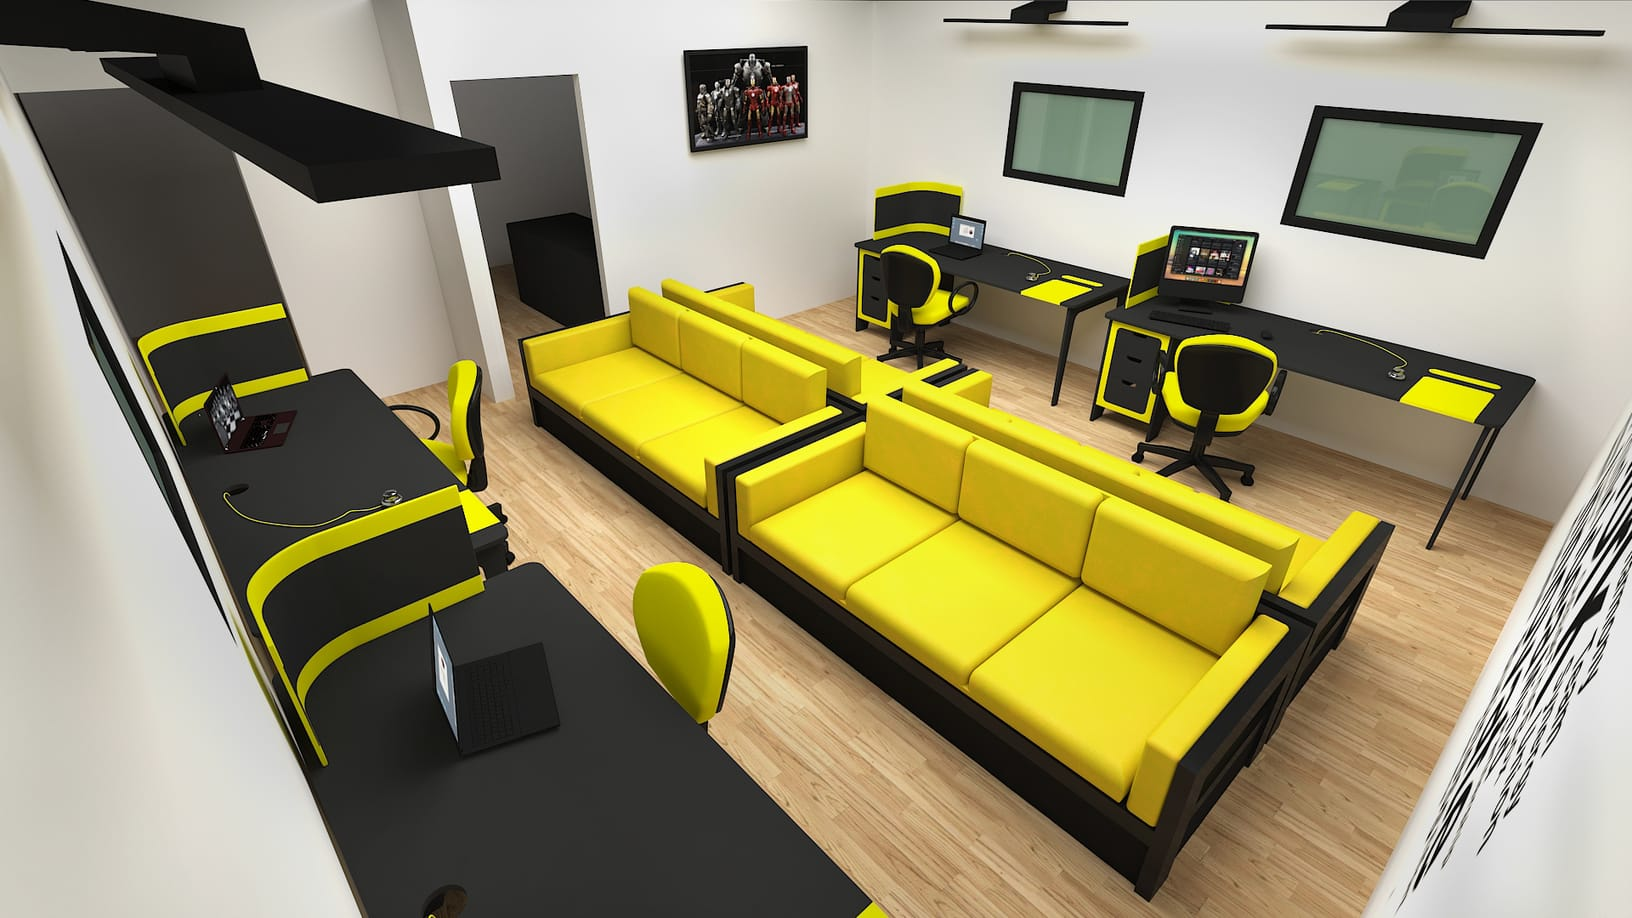 3D Visualisation of a office building and PC